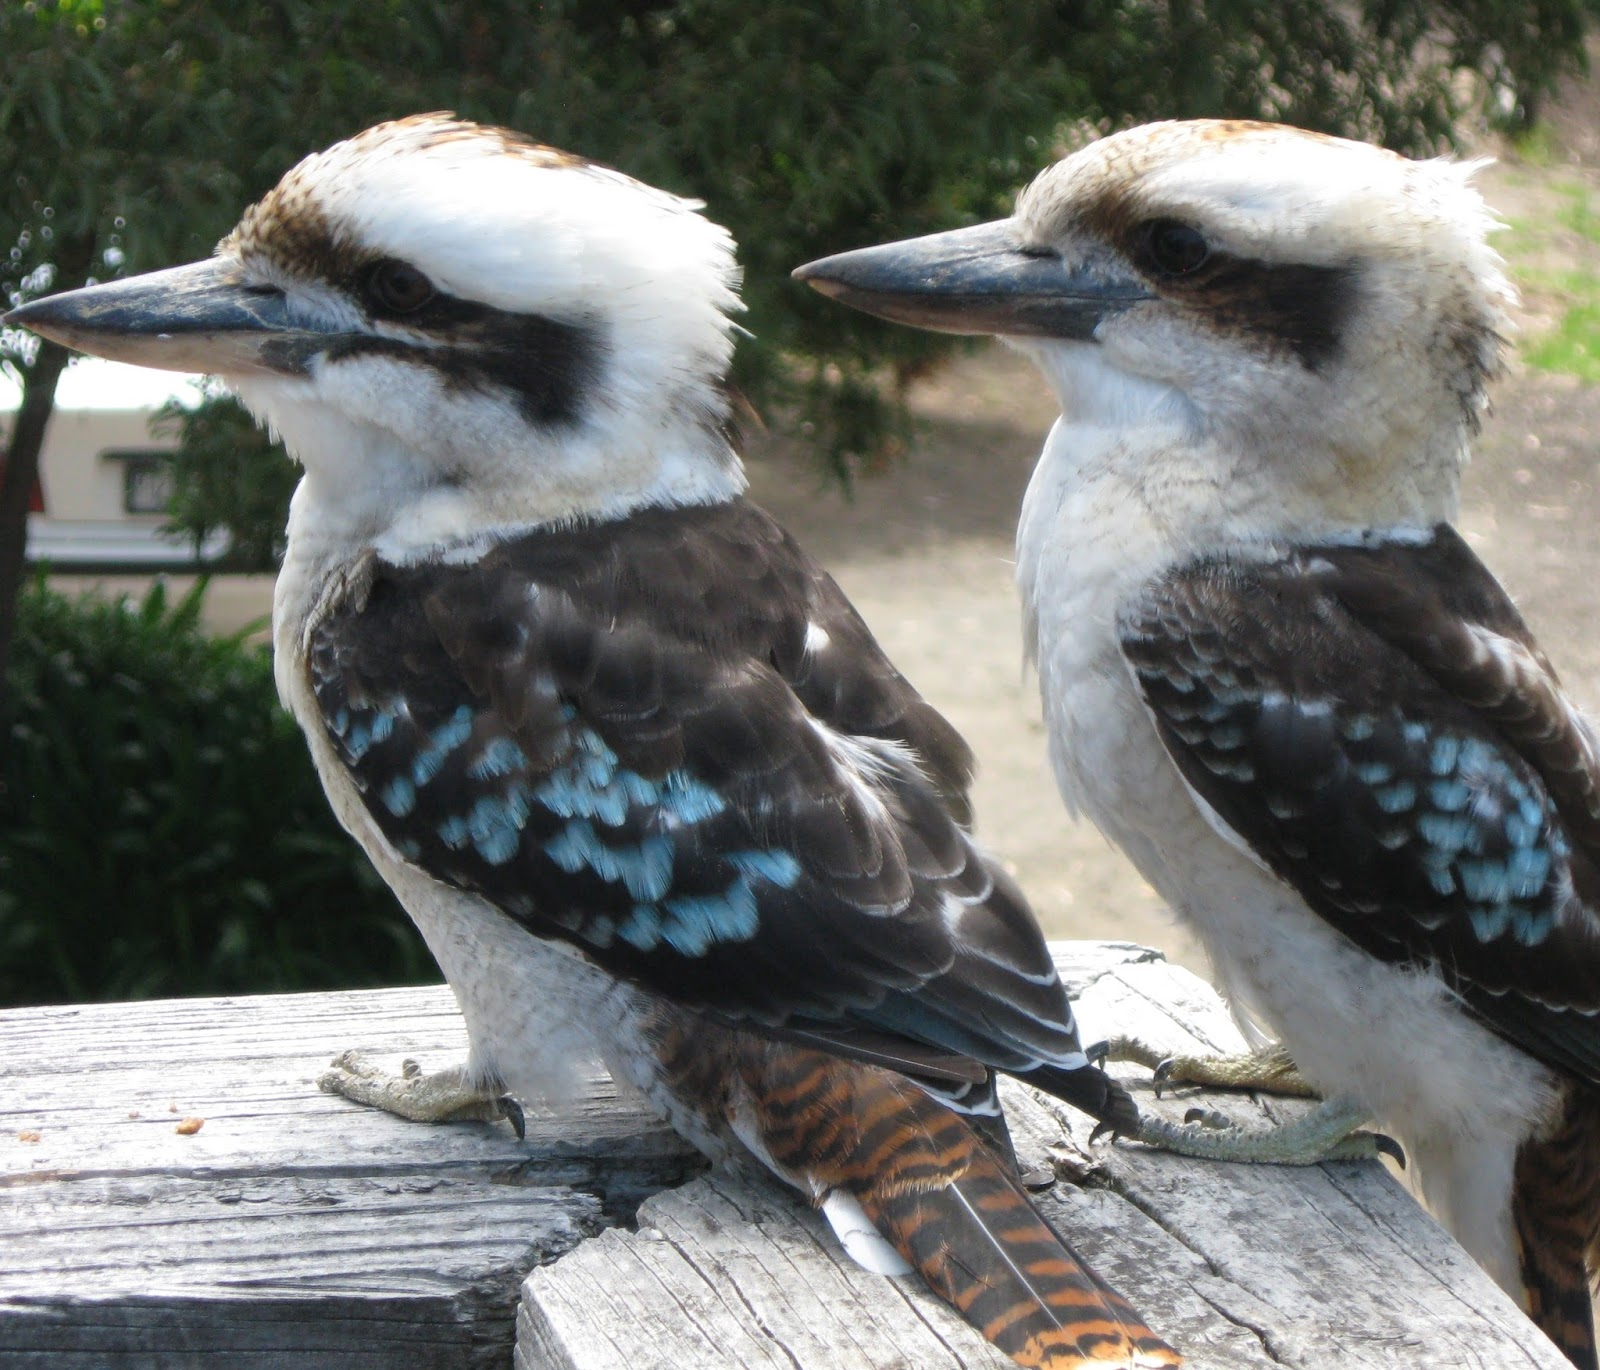 Picture of a pair kookaburra birds.